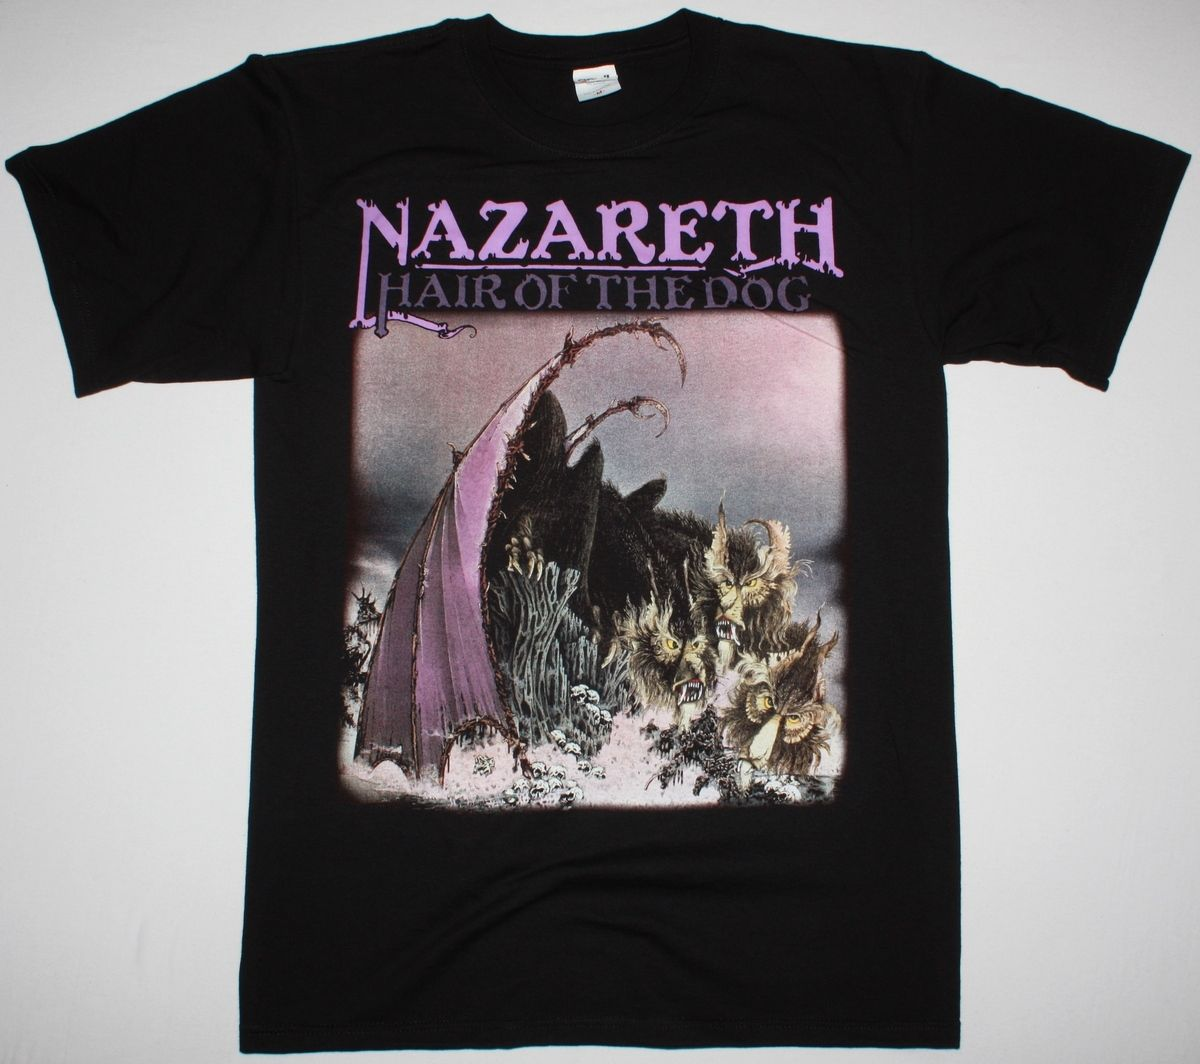 NAZARETH HAIR OF THE DOG HARD ROCK DEEP PURPLE URIAH HEEP NEW BLACK T-SHIRT Different Colours High Quality 100% ...